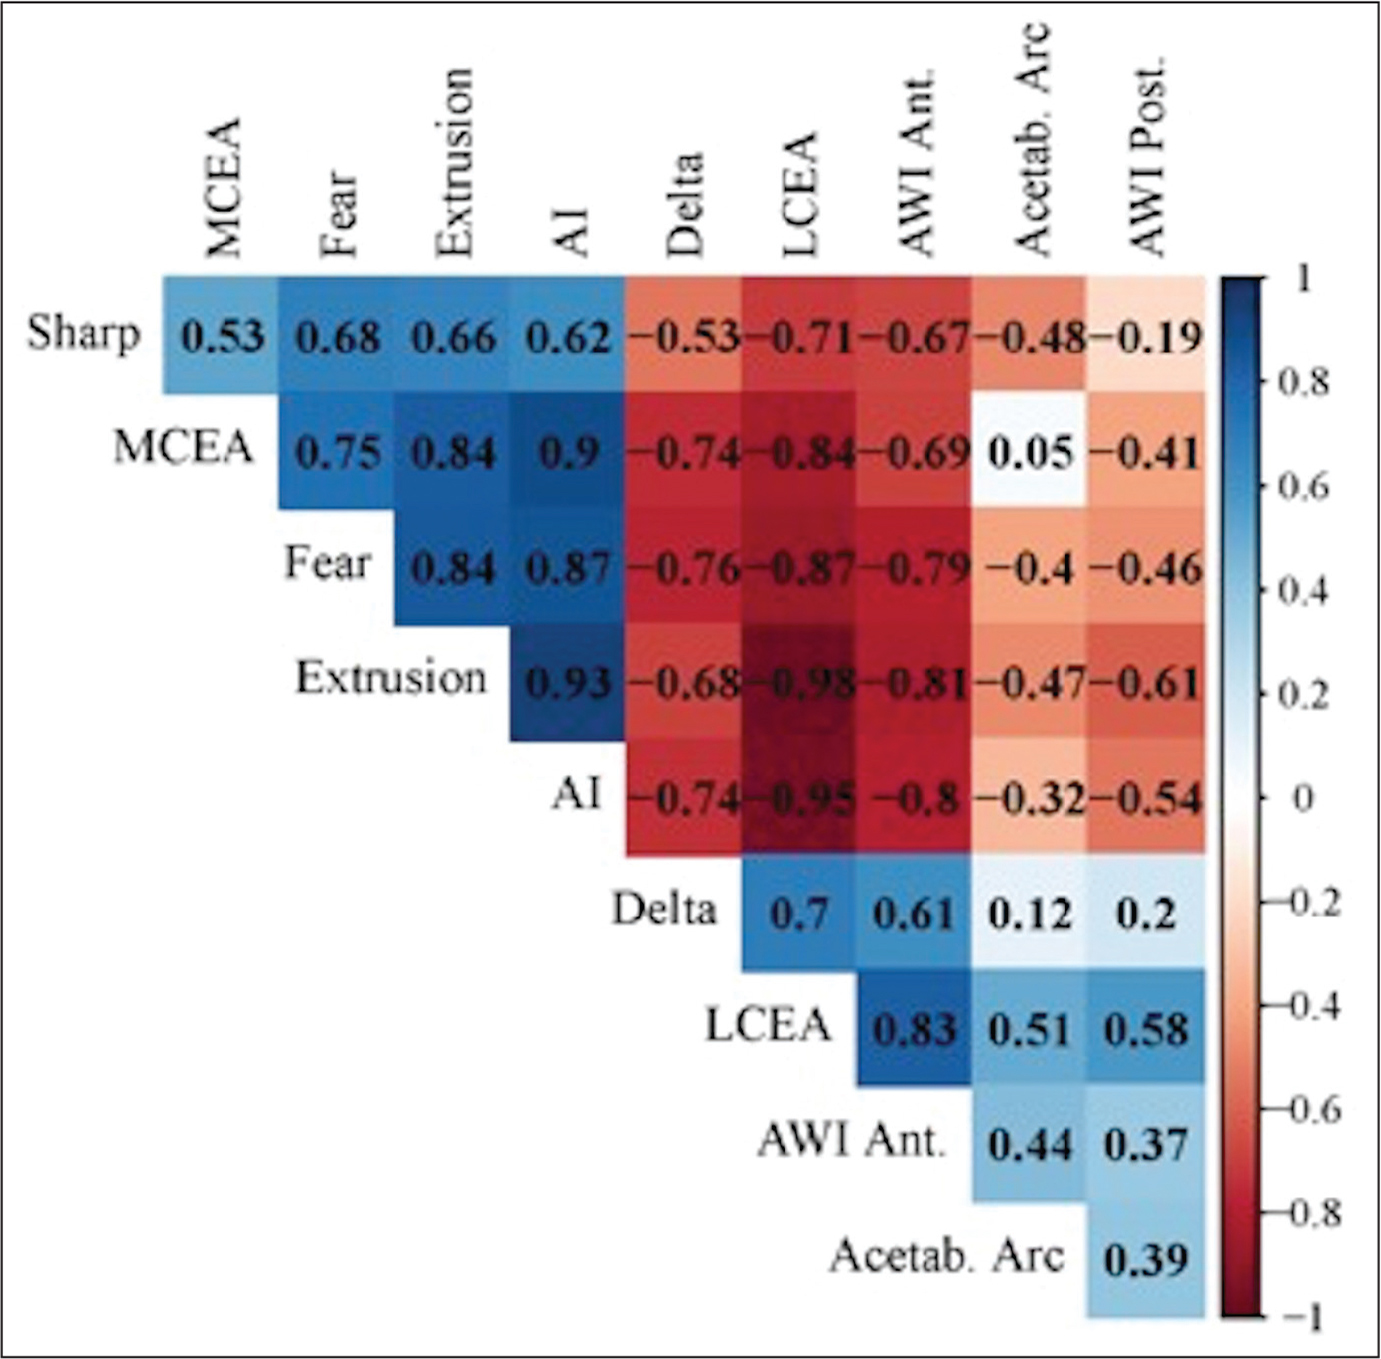 Correlation matrix of different measures of acetabular morphology. The key on the right side of the image indicates measures with increasing positive correlation (closer to +1) with a more blue background, those with no correlation with a white background, and those with increasing negative correlation (closer to −1) with a more red background. Abbreviations: AI, acetabular index; Ant, anterior; AWI, acetabular wall index; Fear, femoro-epiphyseal acetabular roof; LCEA, lateral center-edge angle; MCEA, medial center-edge angle; Post, posterior.